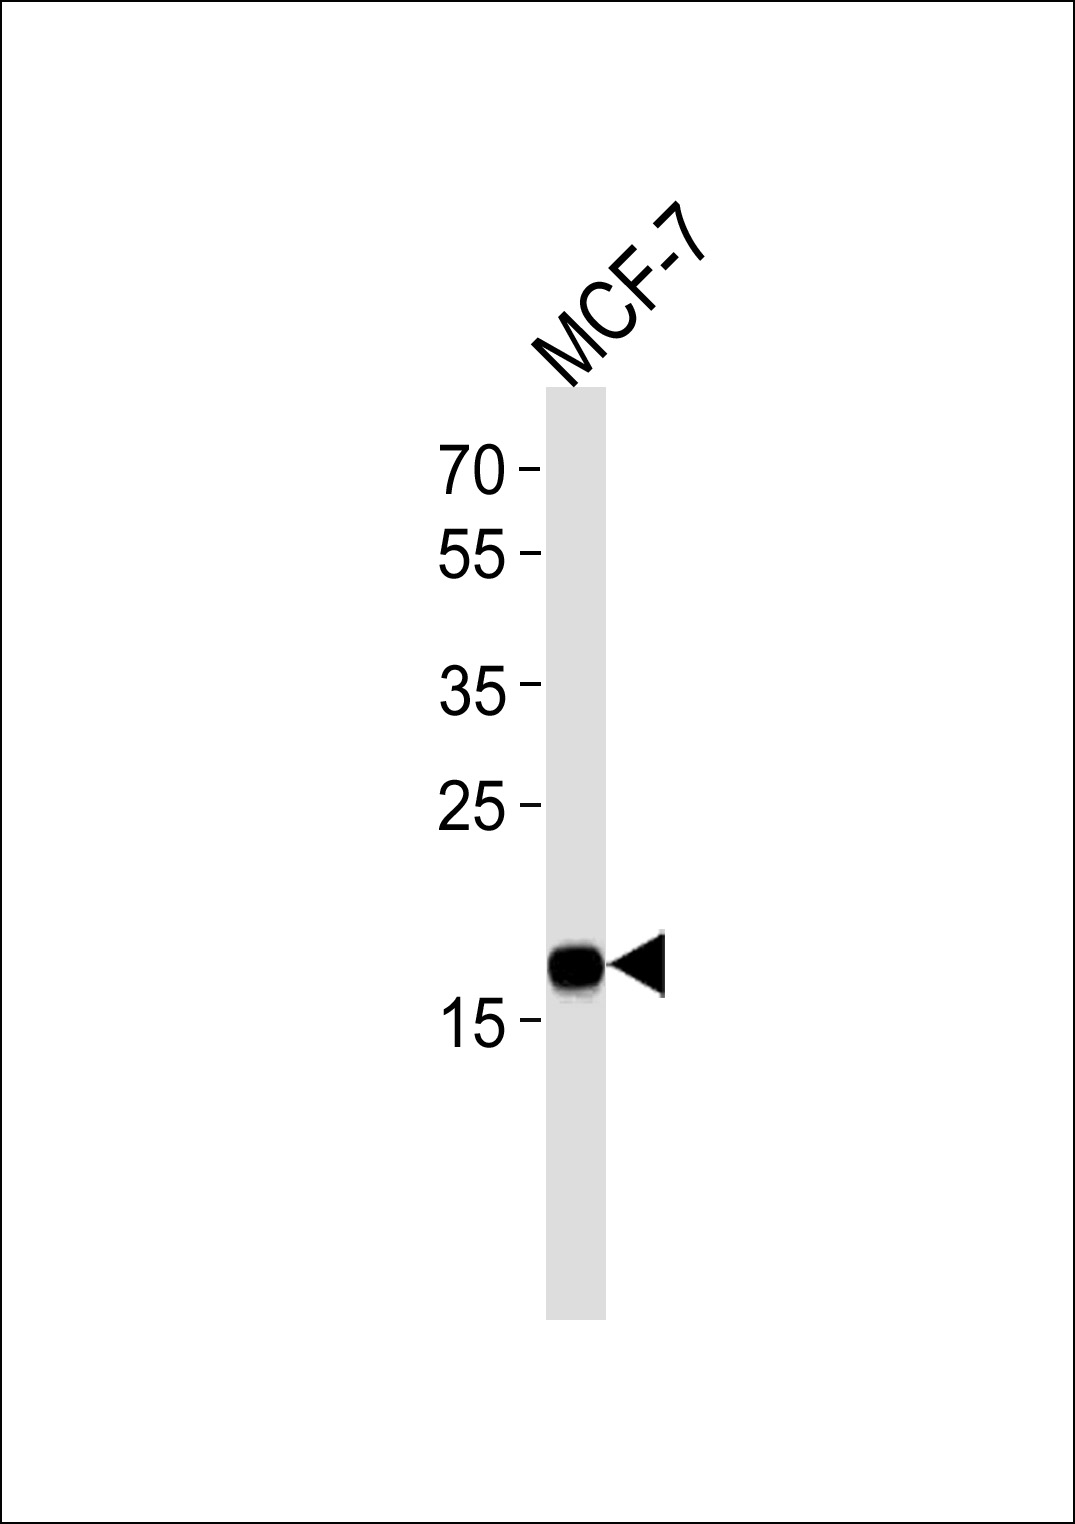 NME1 Antibody western blot of MCF-7 cell line lysates (35 ug/lane). The NME1 antibody detected the NME1 protein (arrow).